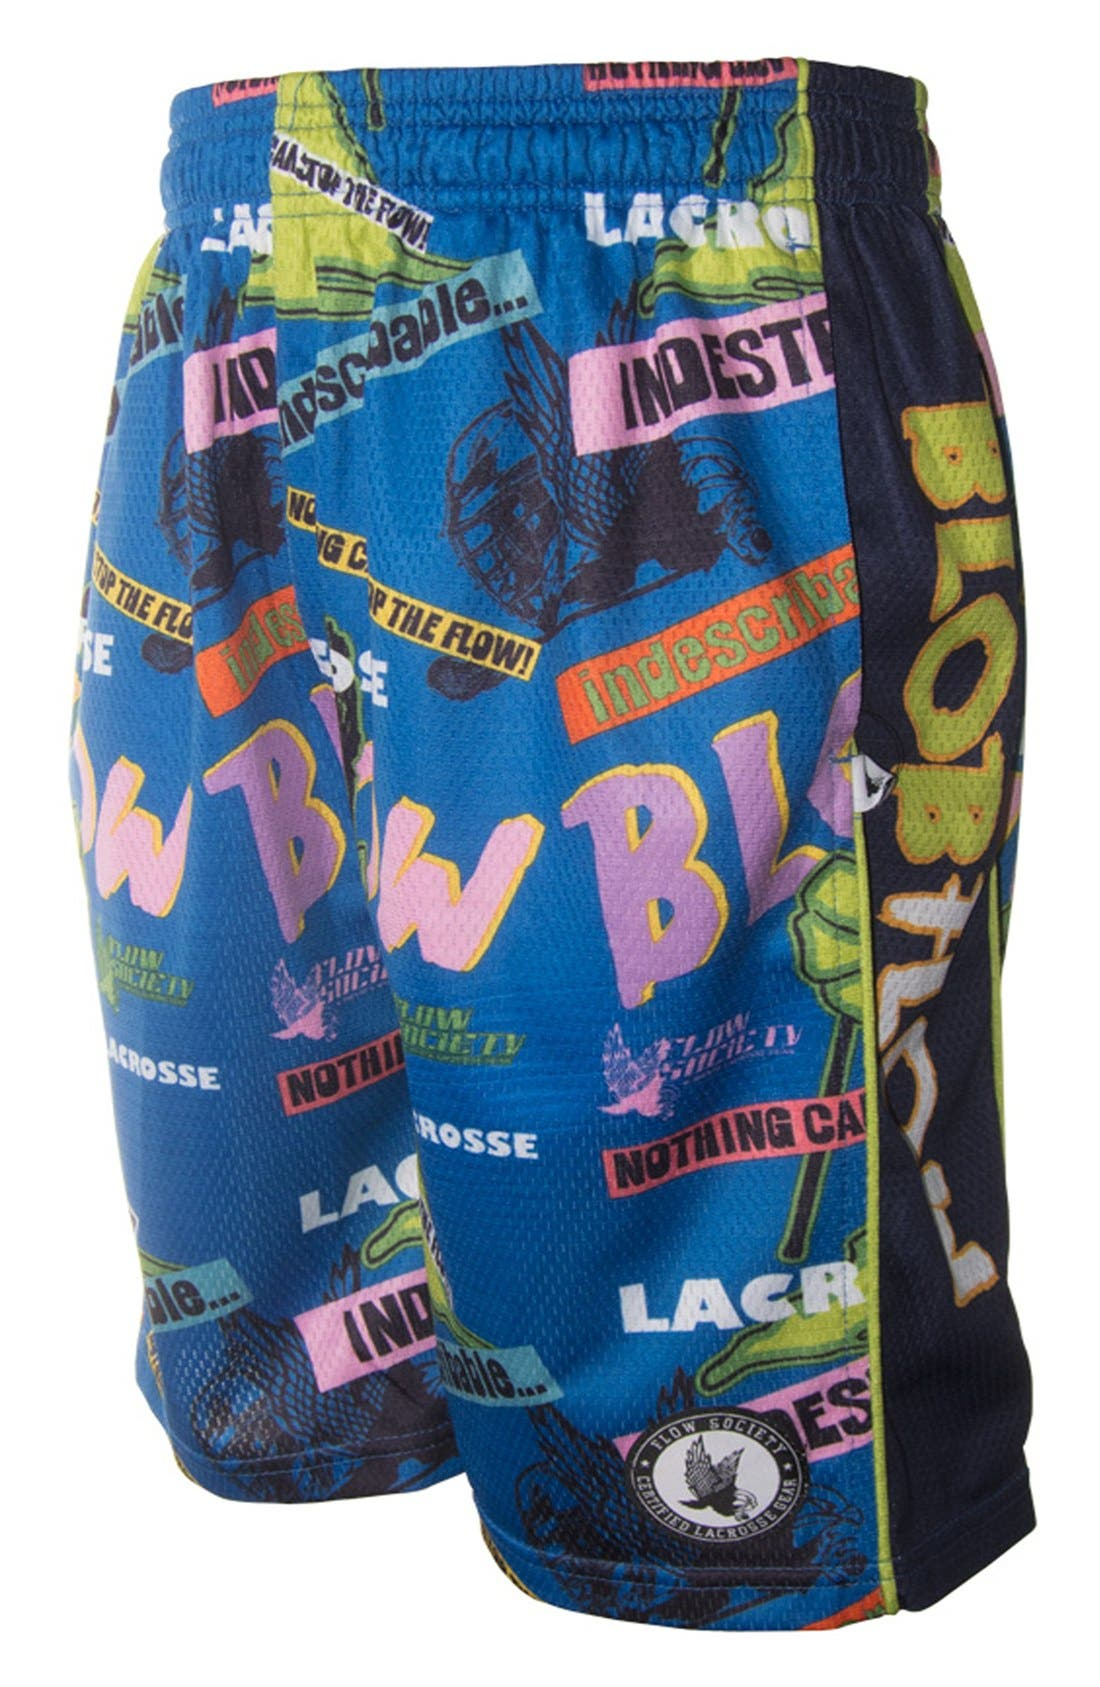 Alternate Image 1 Selected - Flow Society 'Flow Blob' Lacrosse Shorts (Little Boys & Big Boys)